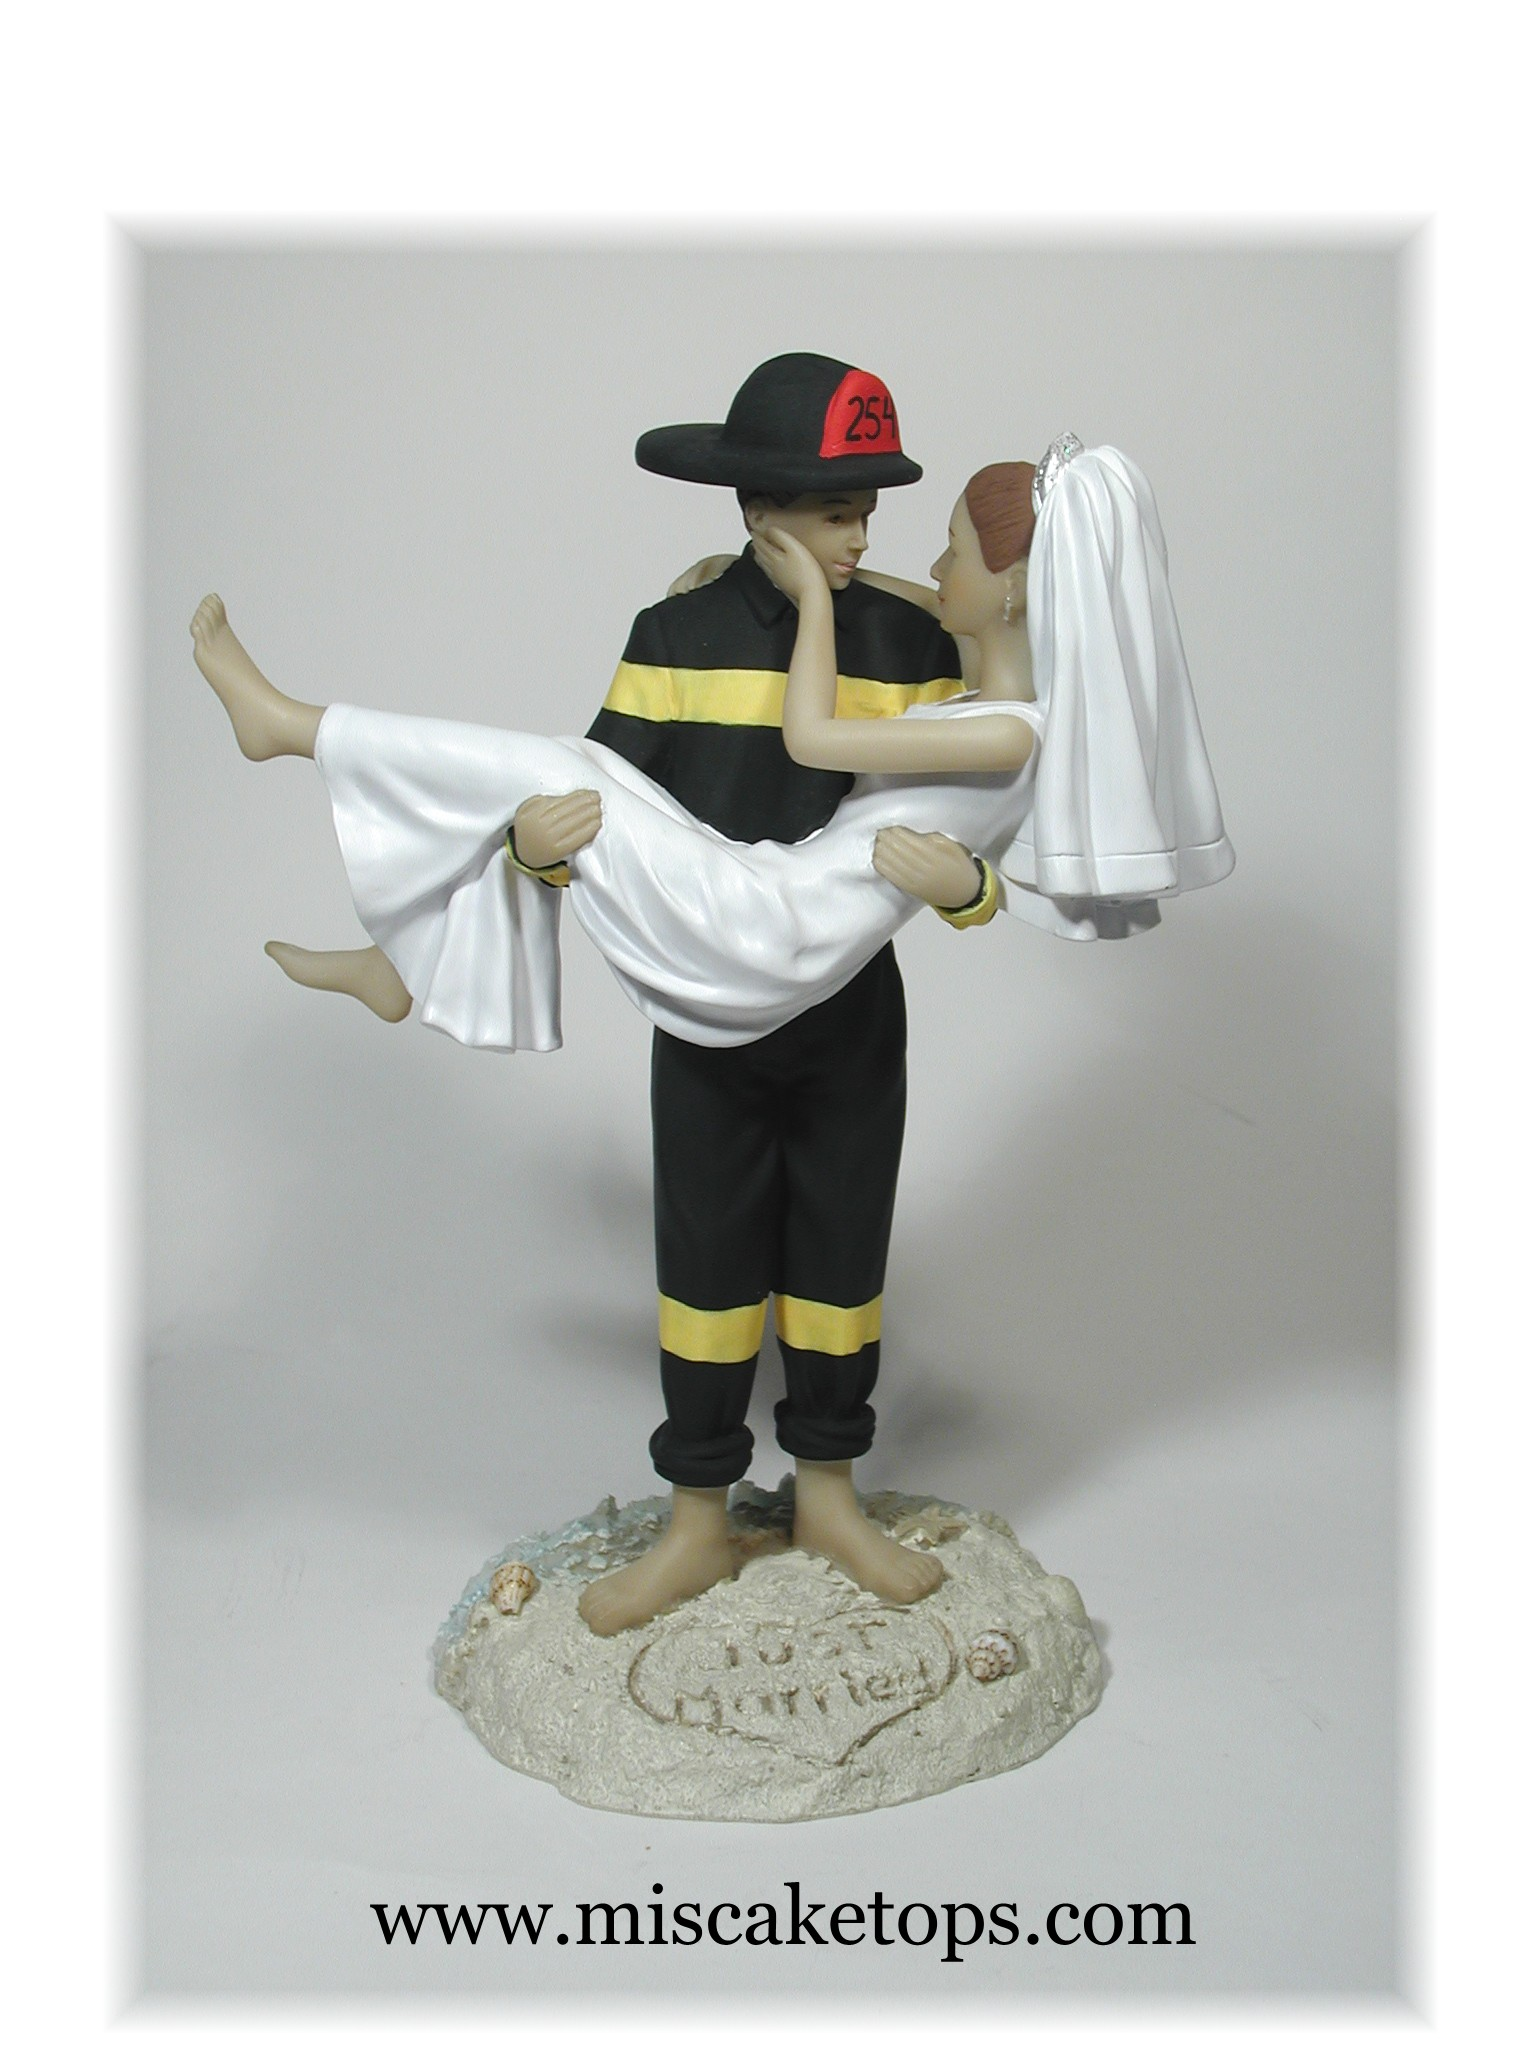 Firefighter Examples of Personalized Cake Tops